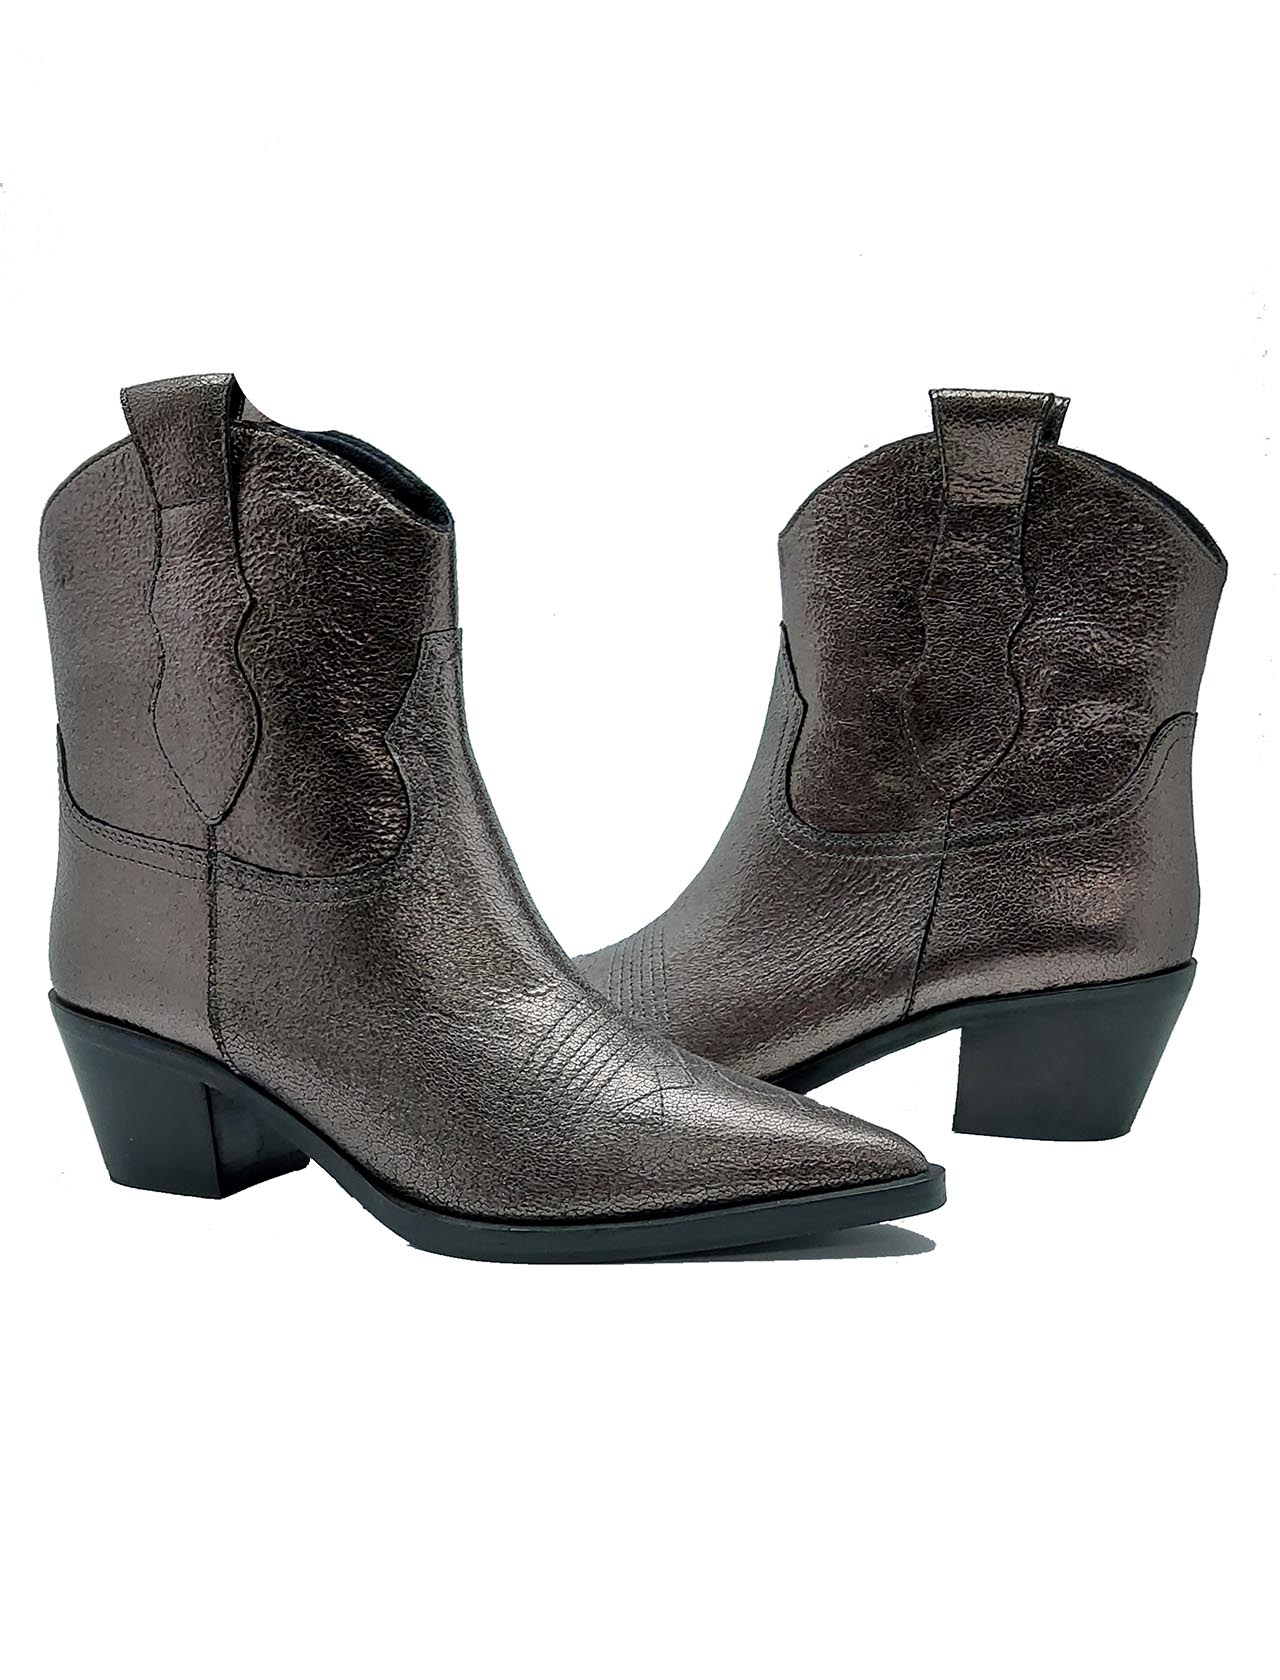 Laminated Texan Women's Ankle Boots Bruno Premi | Ankle Boots | BY6502XCANNA DI FUCILE